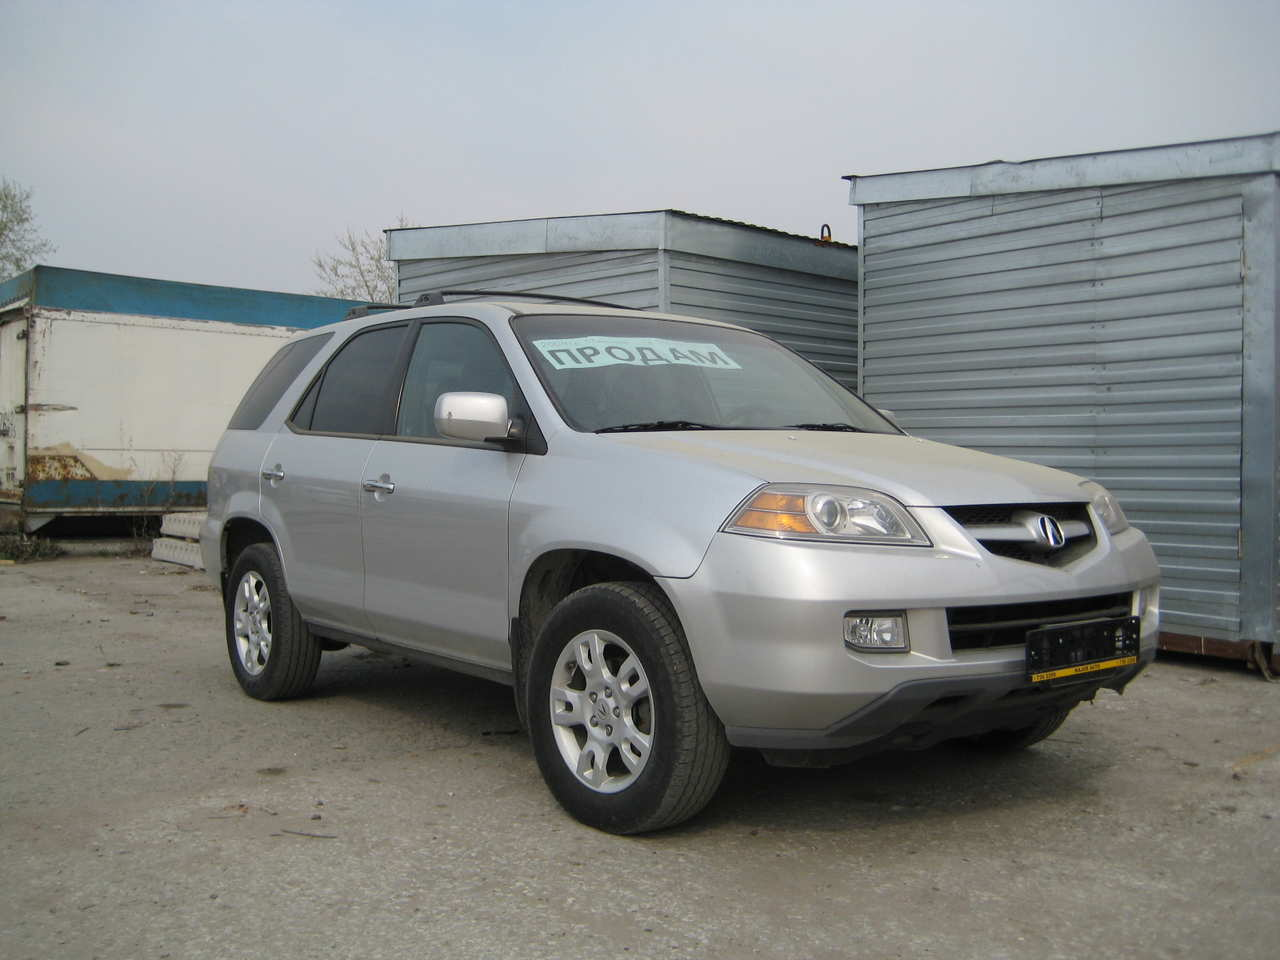 used 2004 acura mdx photos 3500cc gasoline automatic for sale. Black Bedroom Furniture Sets. Home Design Ideas